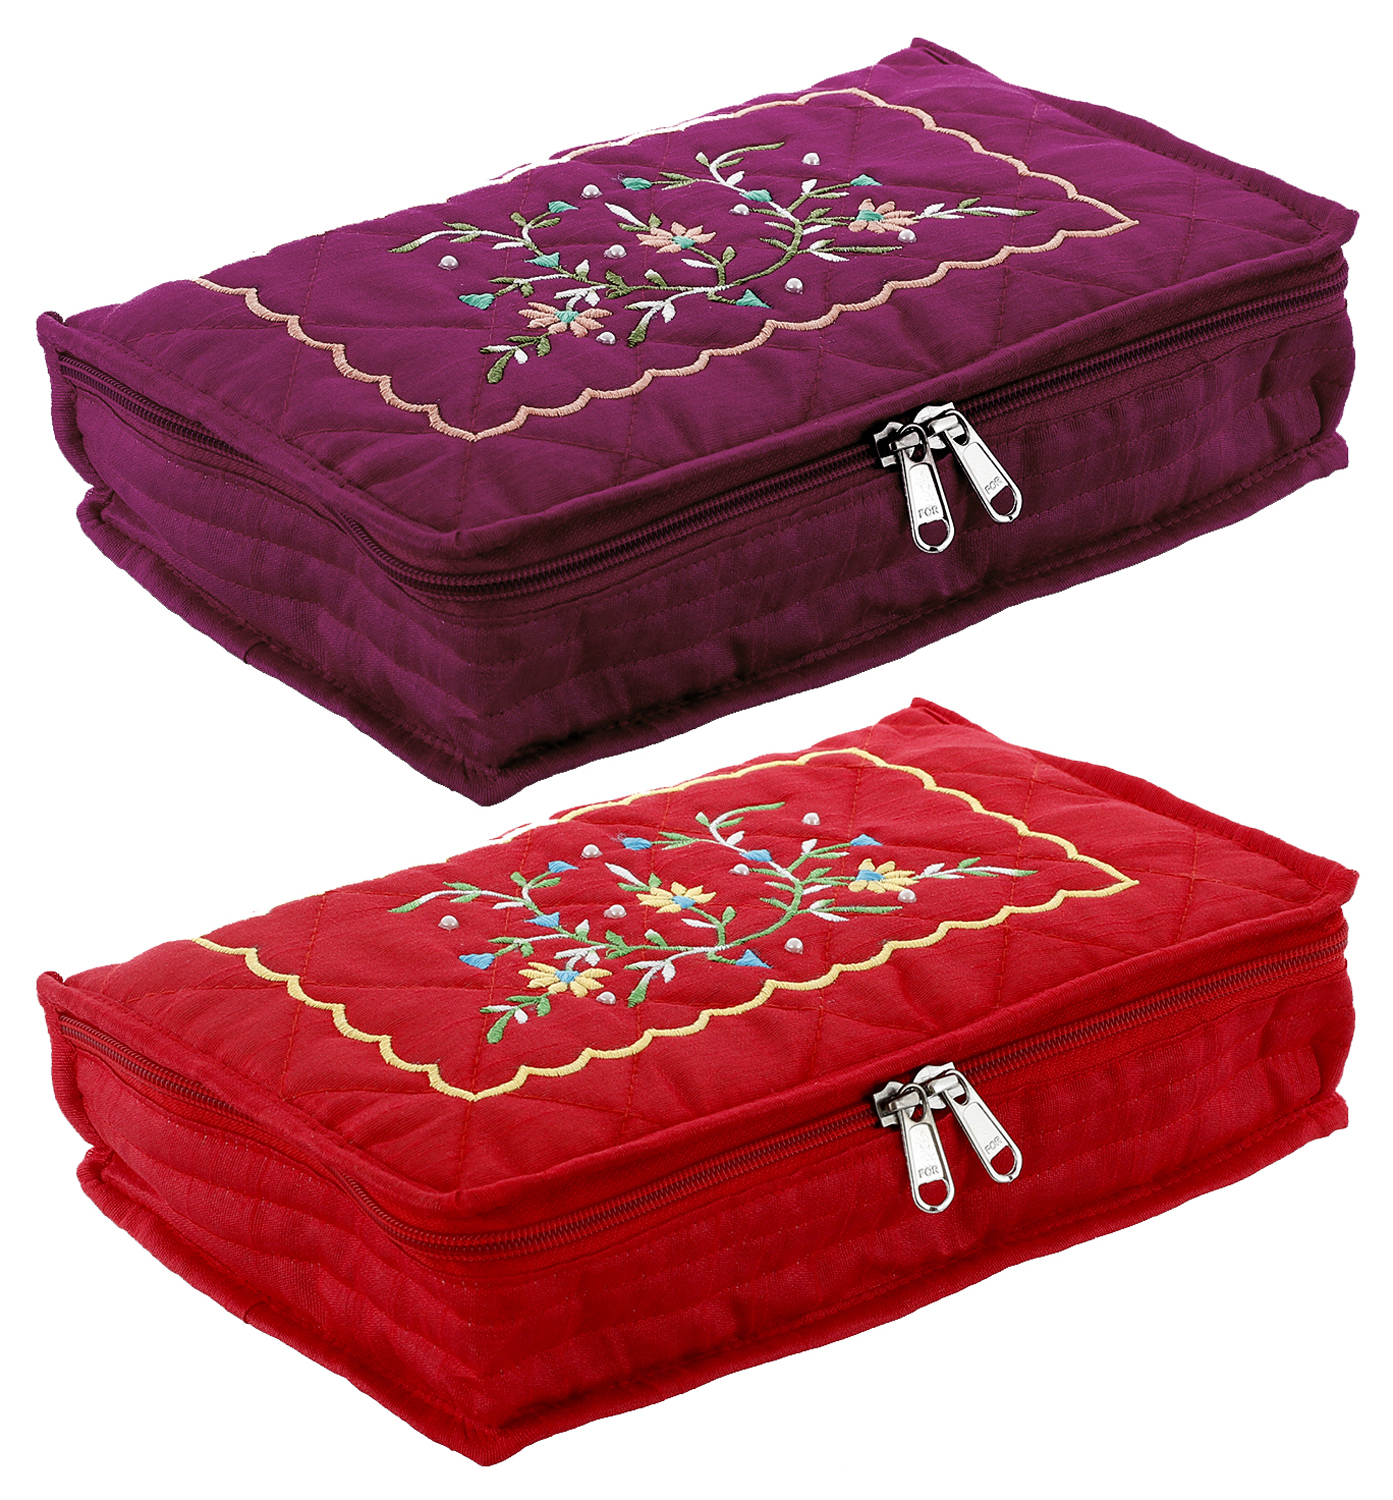 Kuber Industries Embroidery Design 2 Pieces Cotton Jewellery Kit, Red & Maroon - CTKTC30602